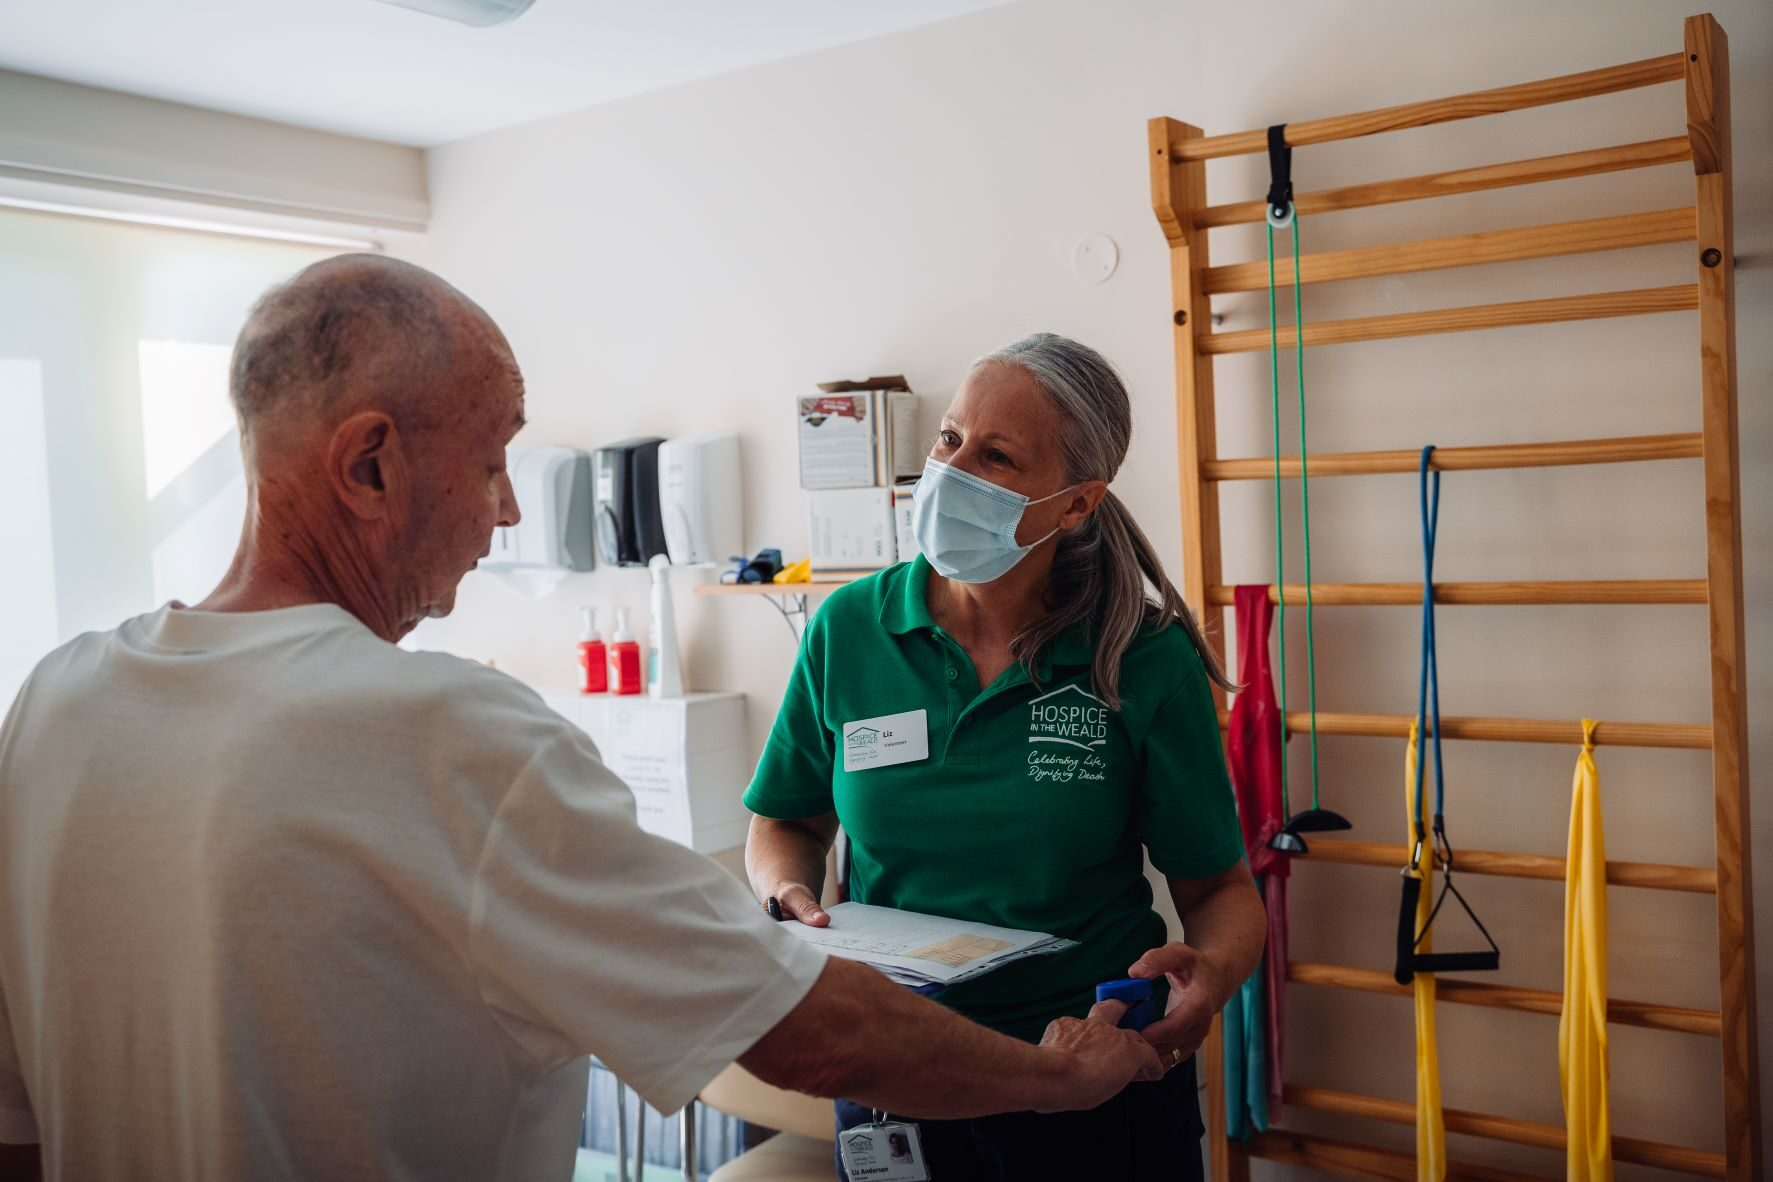 Robert a Physio Patient having his blood oxygen level checked